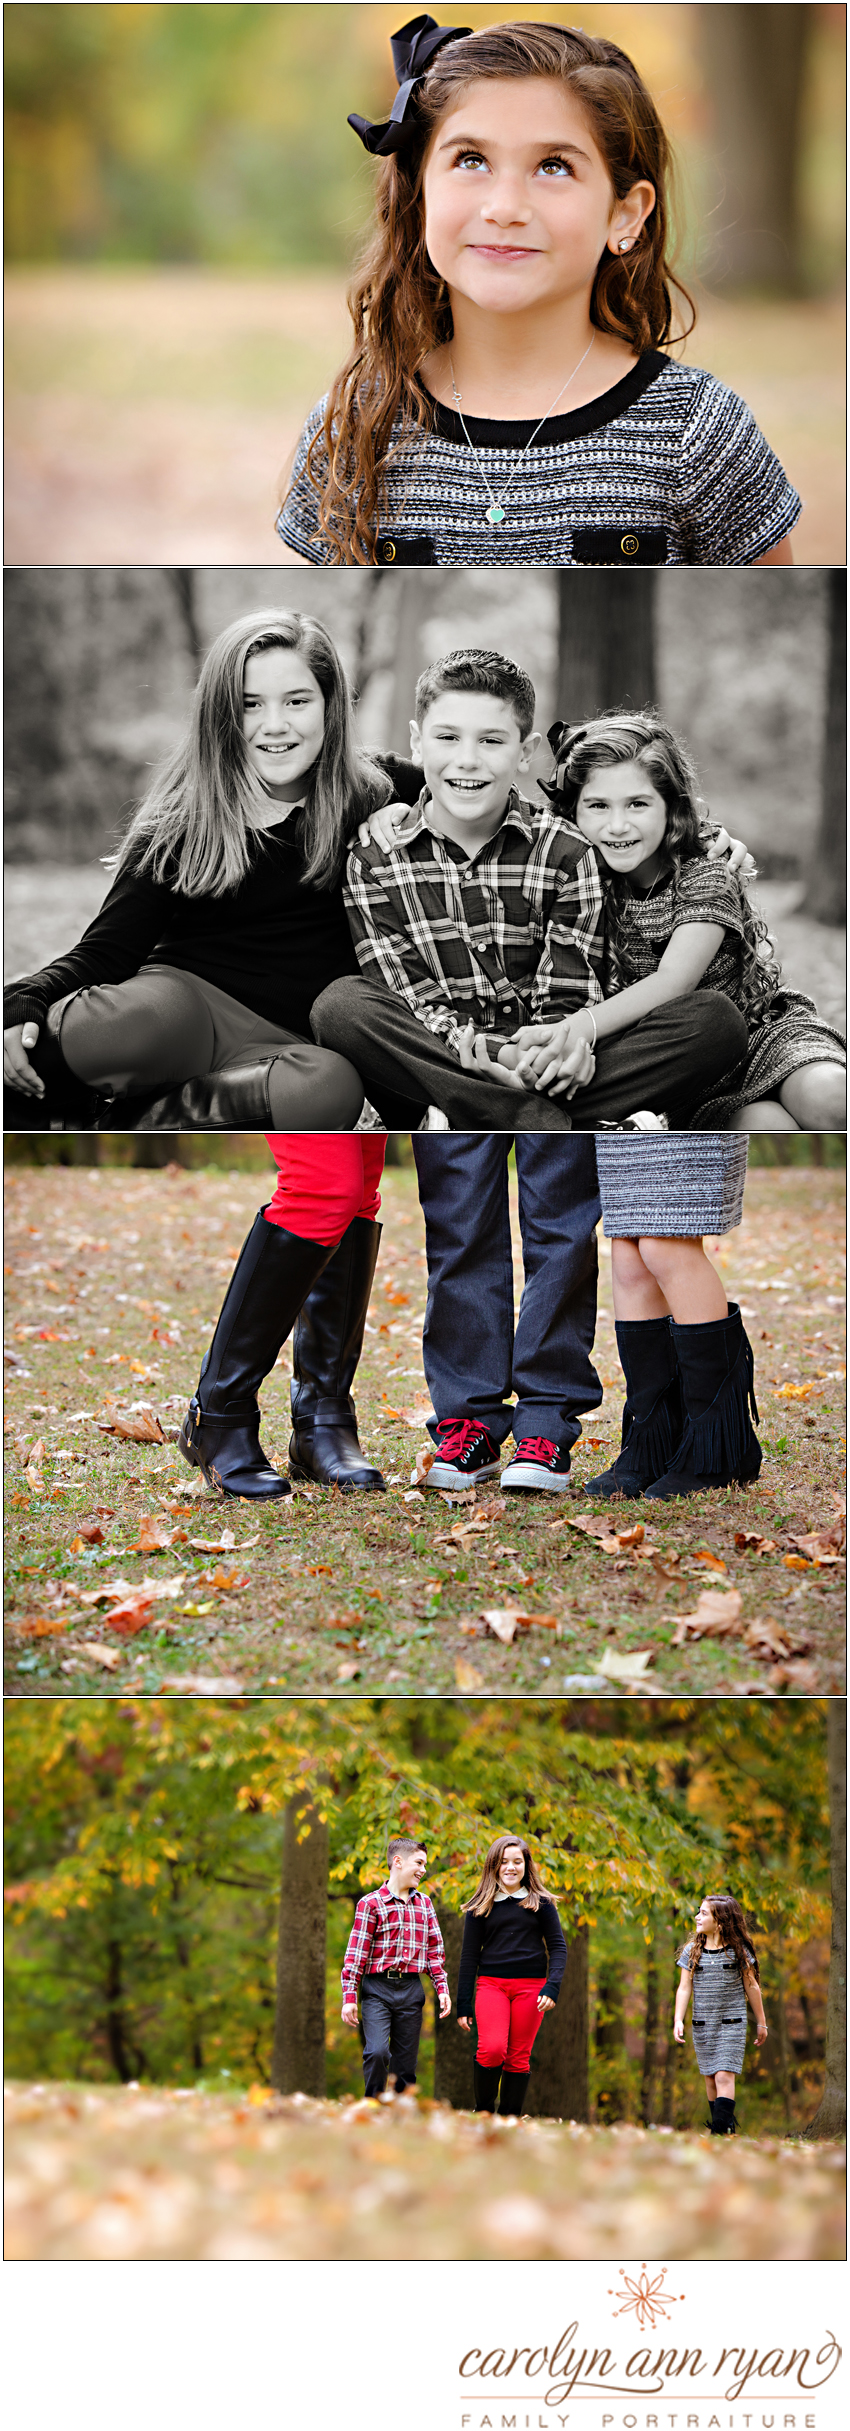 Child and Family portraits by Carolyn Ann Ryan Photograhy in Charlotte, North Carolina